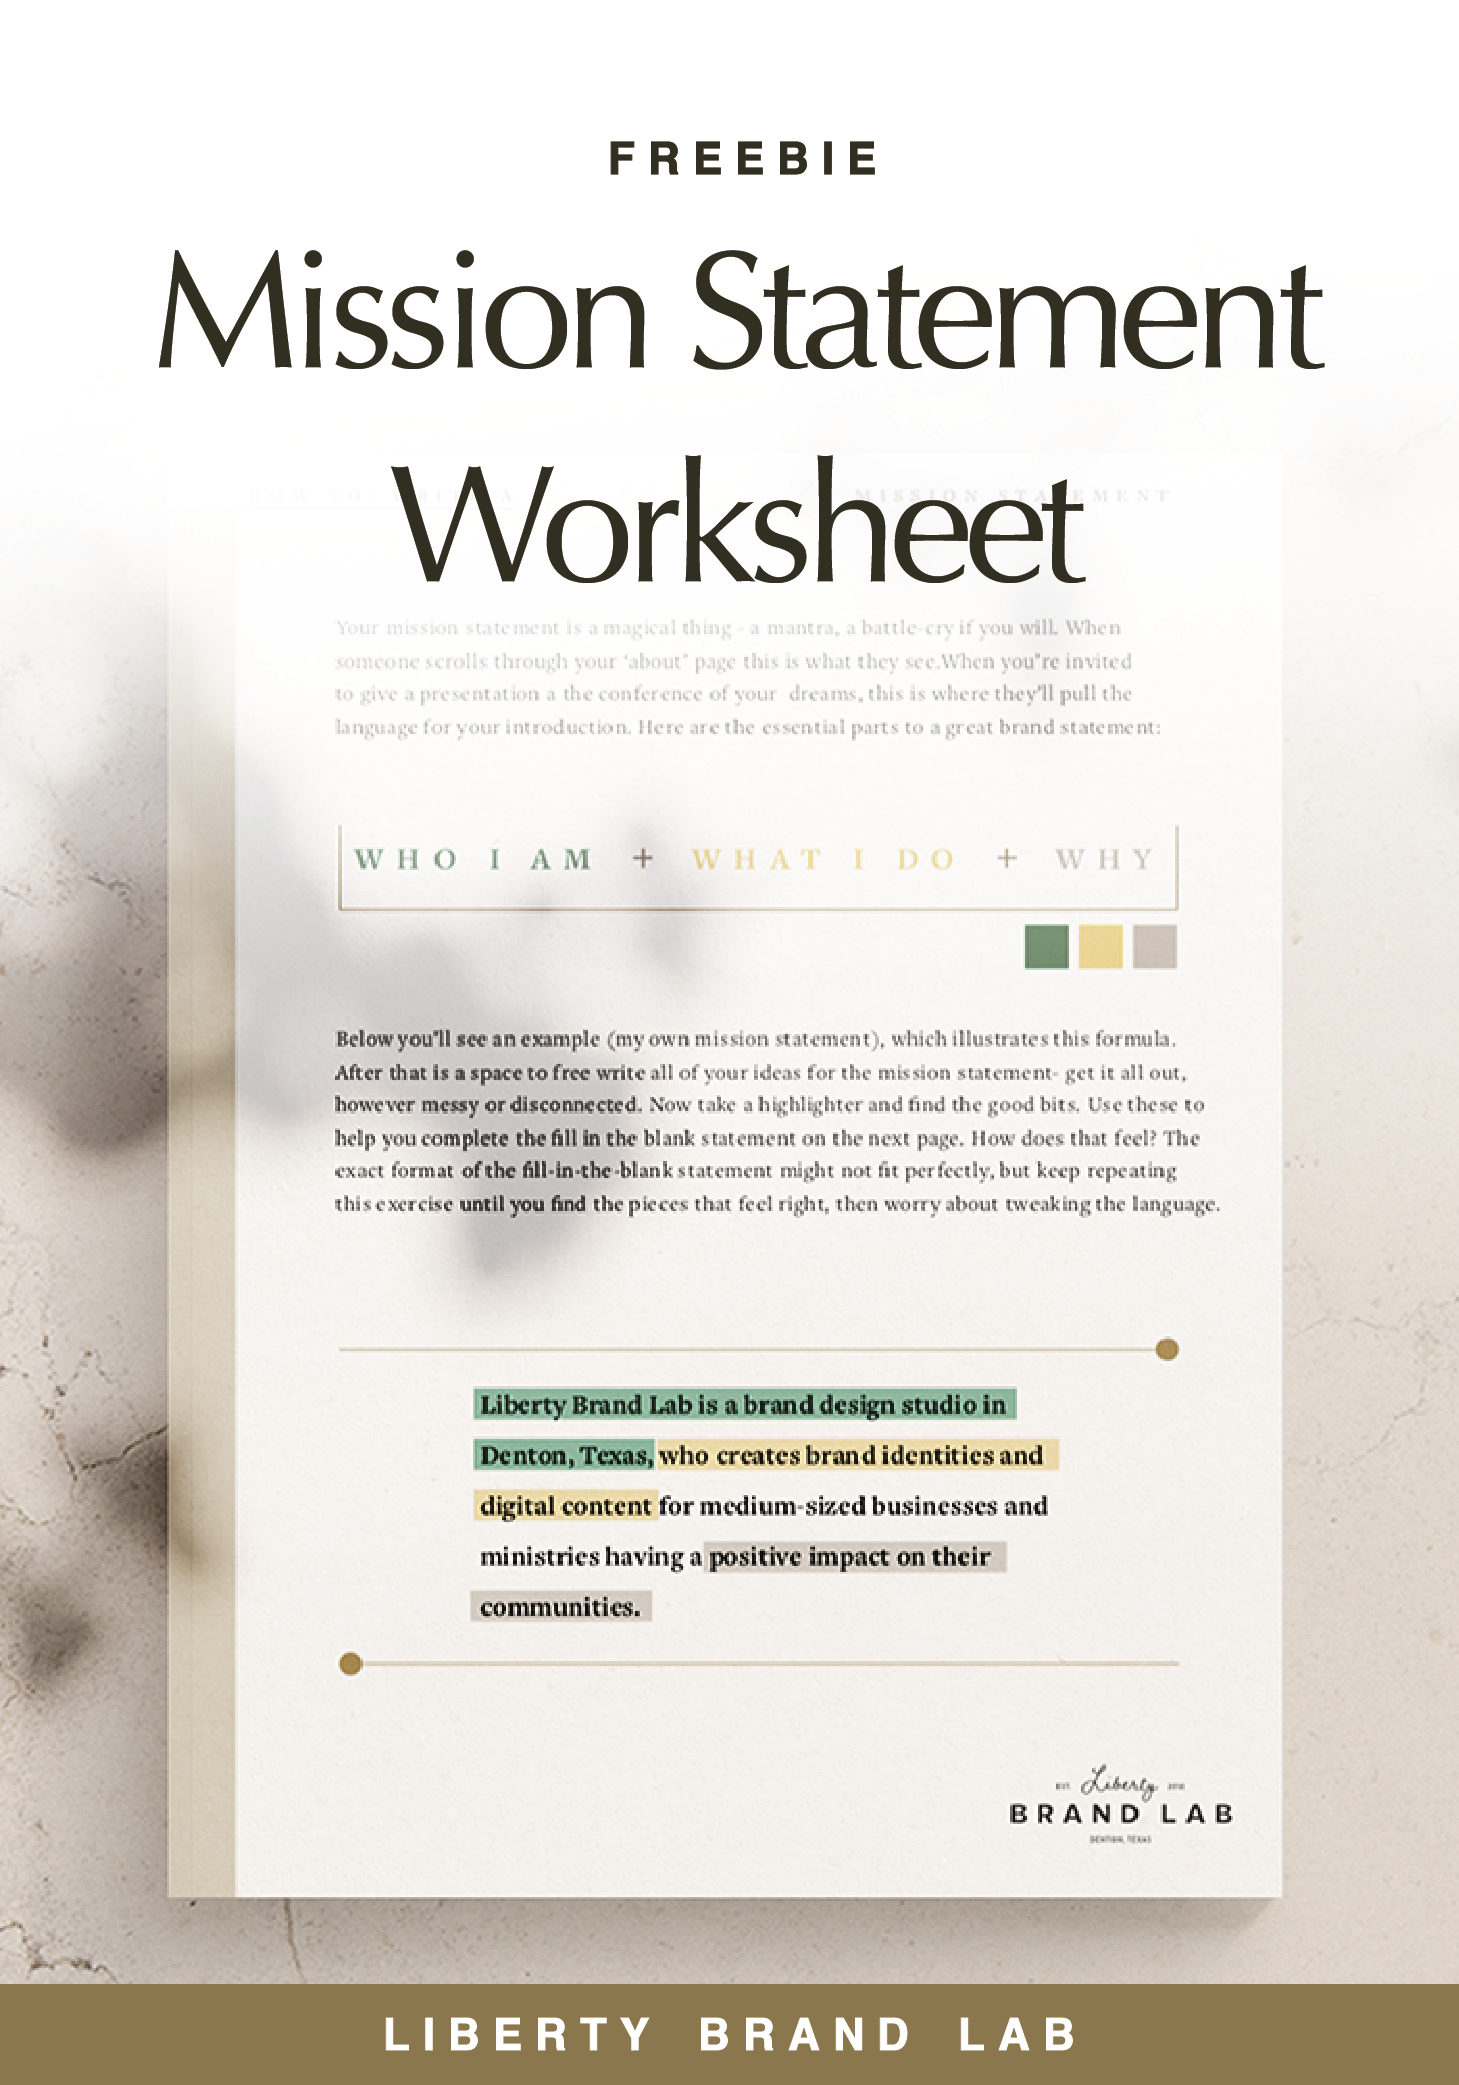 In 5 Minutes Learn How To Write A Mission Statement That